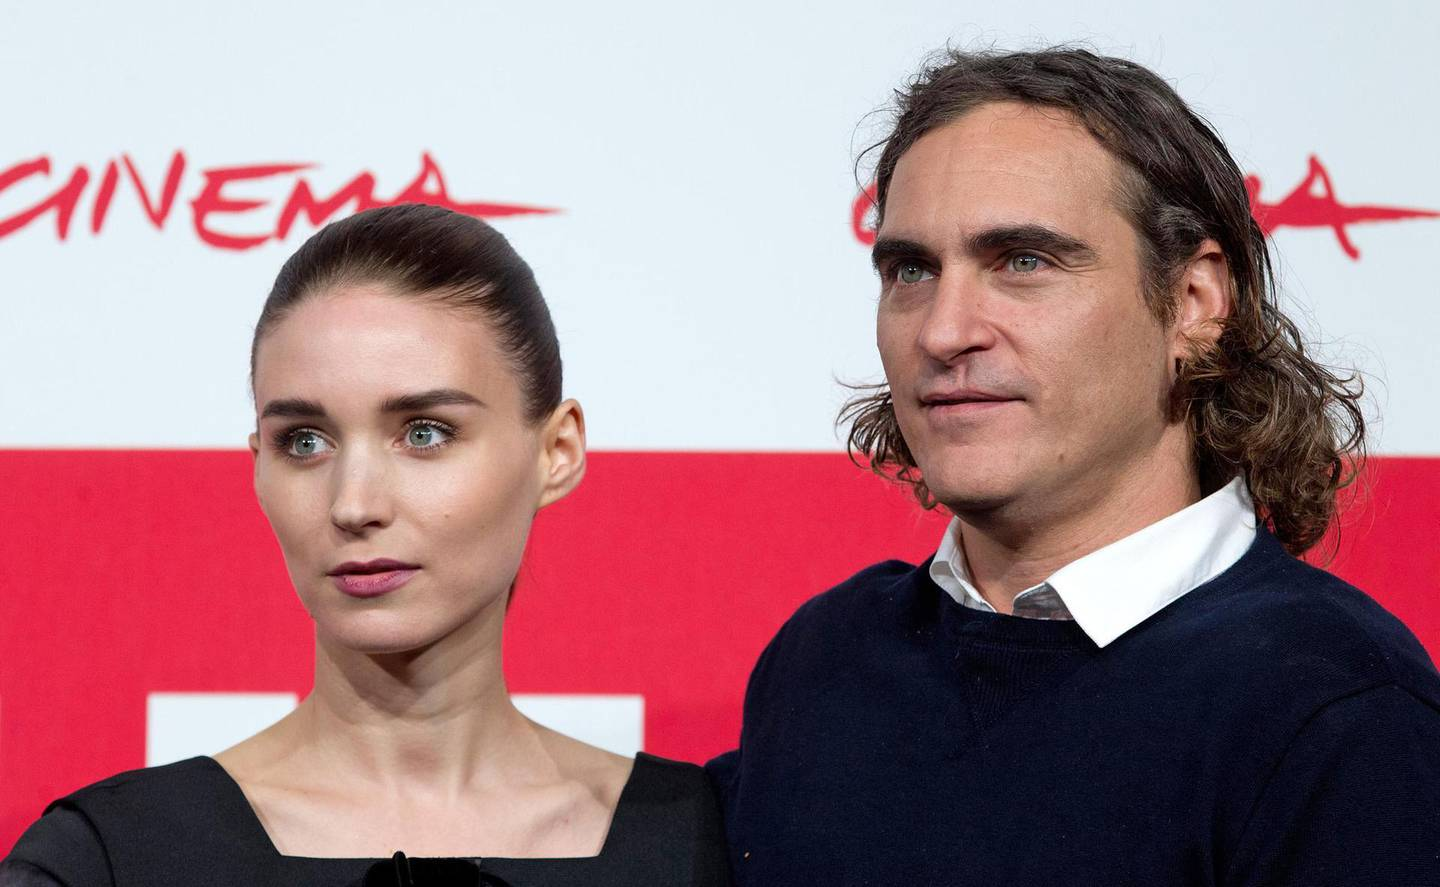 epa03943973 US actress/cast member Rooney Mara (L) and compatriot actor/cast member Joaquin Phoenix (R) pose during the photocall for the movie 'Her' at the 8th annual Rome Film Festival, in Rome, Italy, 10 November 2013. The movie is presented in the official competition at the festival that runs from 08 to 17 November.  EPA/CLAUDIO PERI